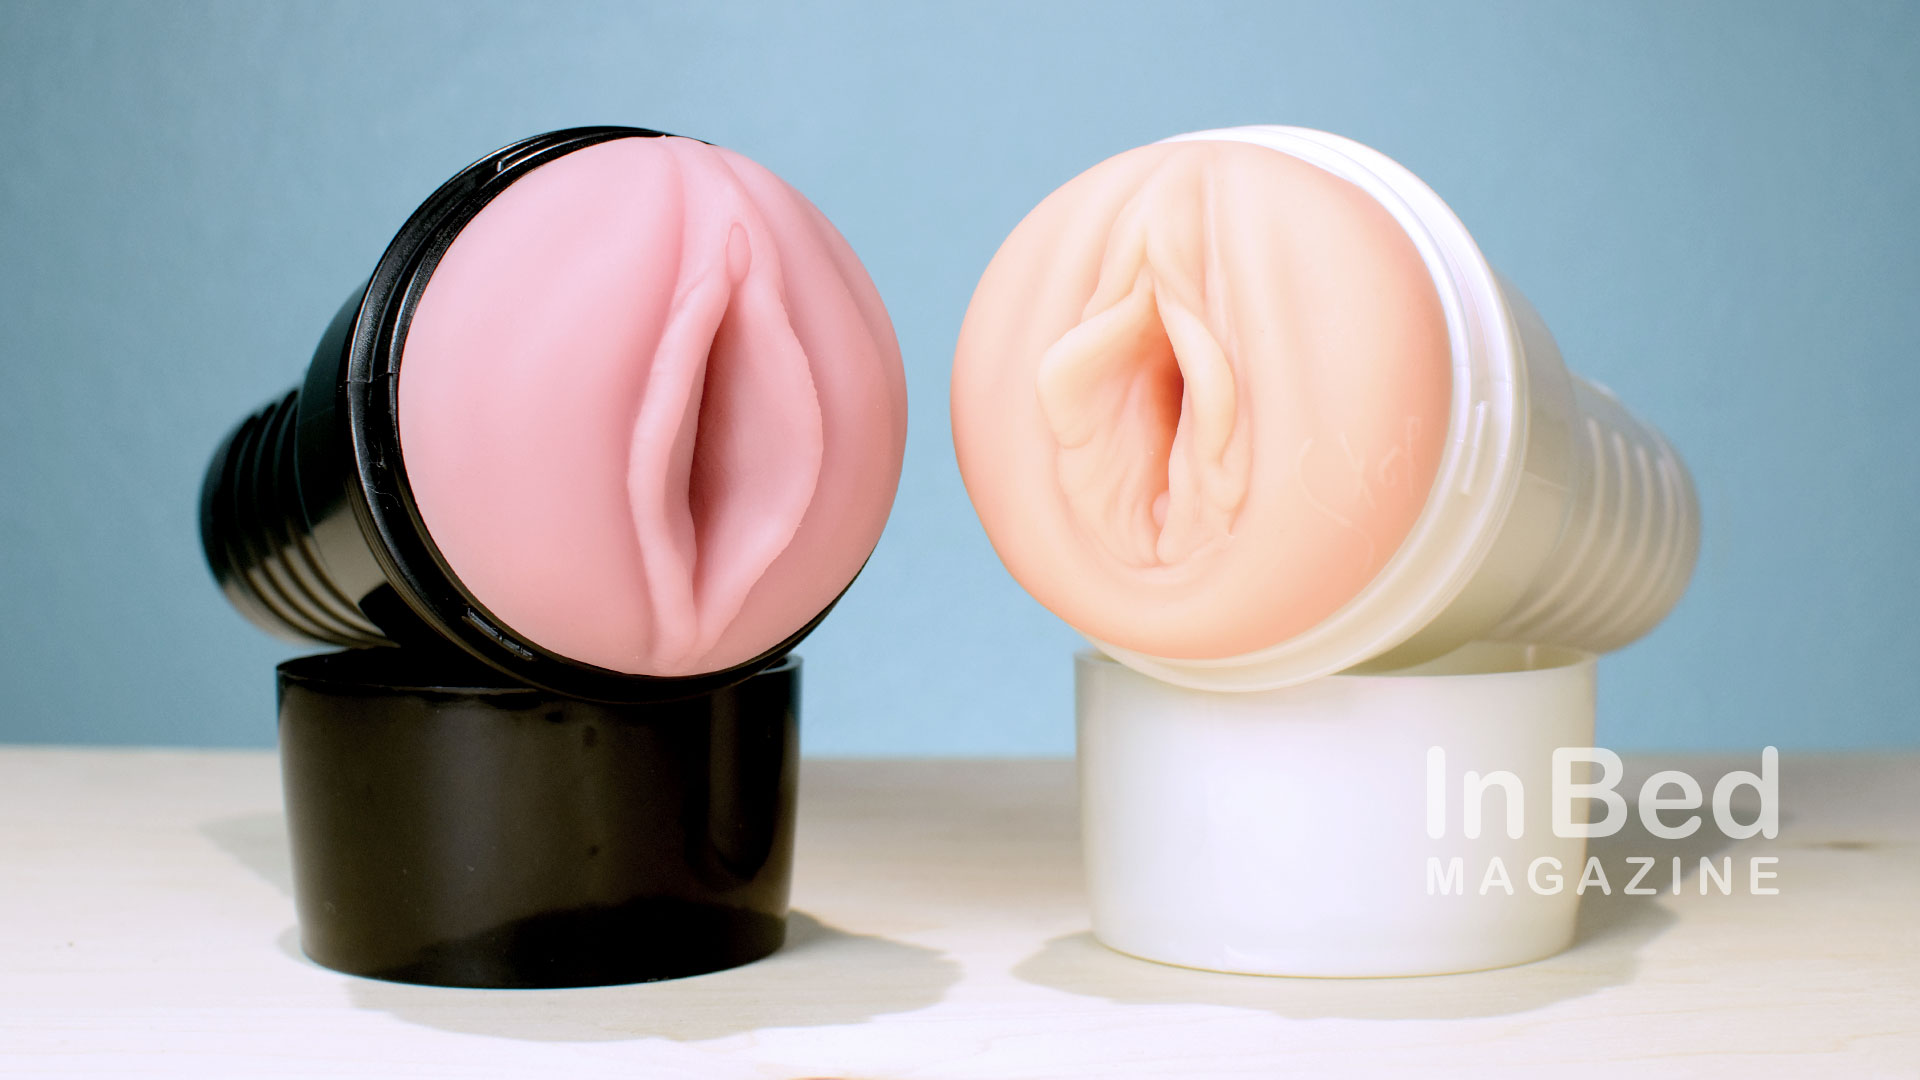 Gucci Fleshlight